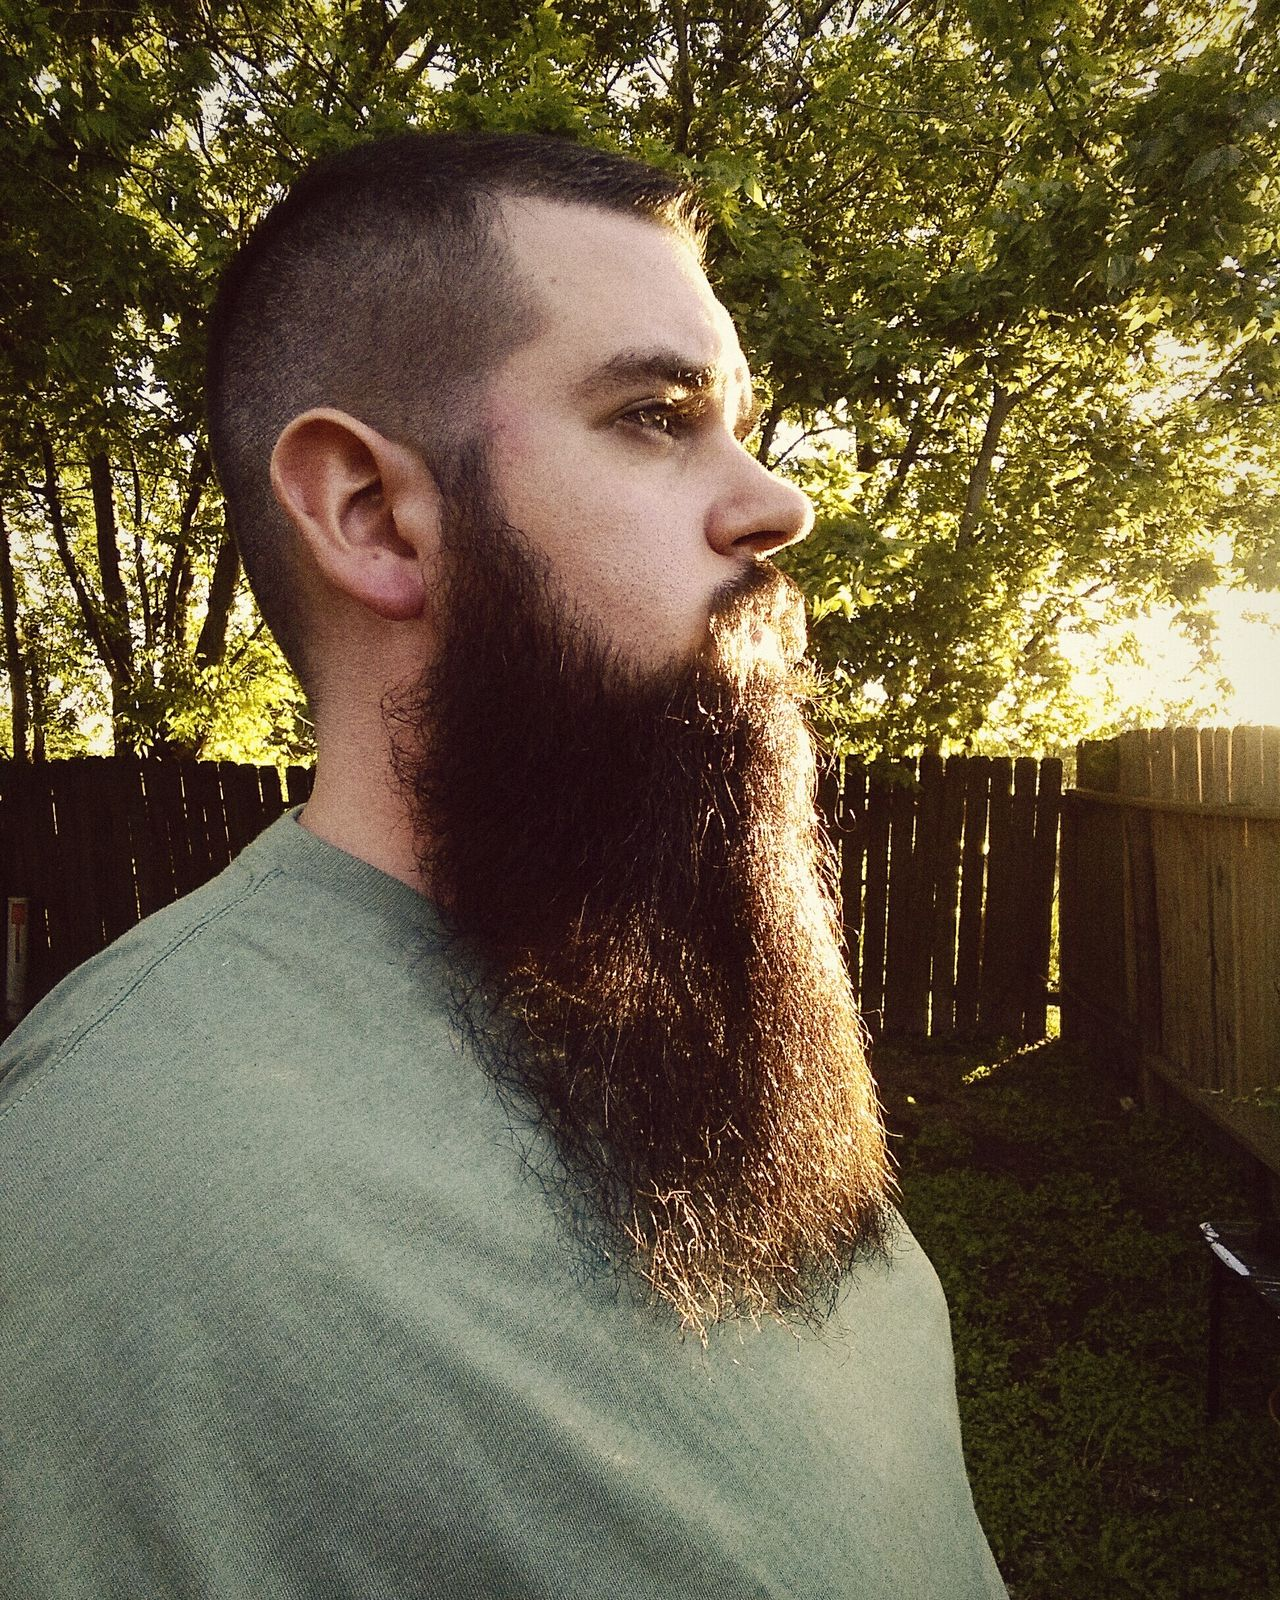 One Man Only One Person Day Outdoors Young Adult Side View Side Profile Beardman Beardedguy Beardporn Beard Bearded Beardedman Bearded Man Sunshine Through The Trees